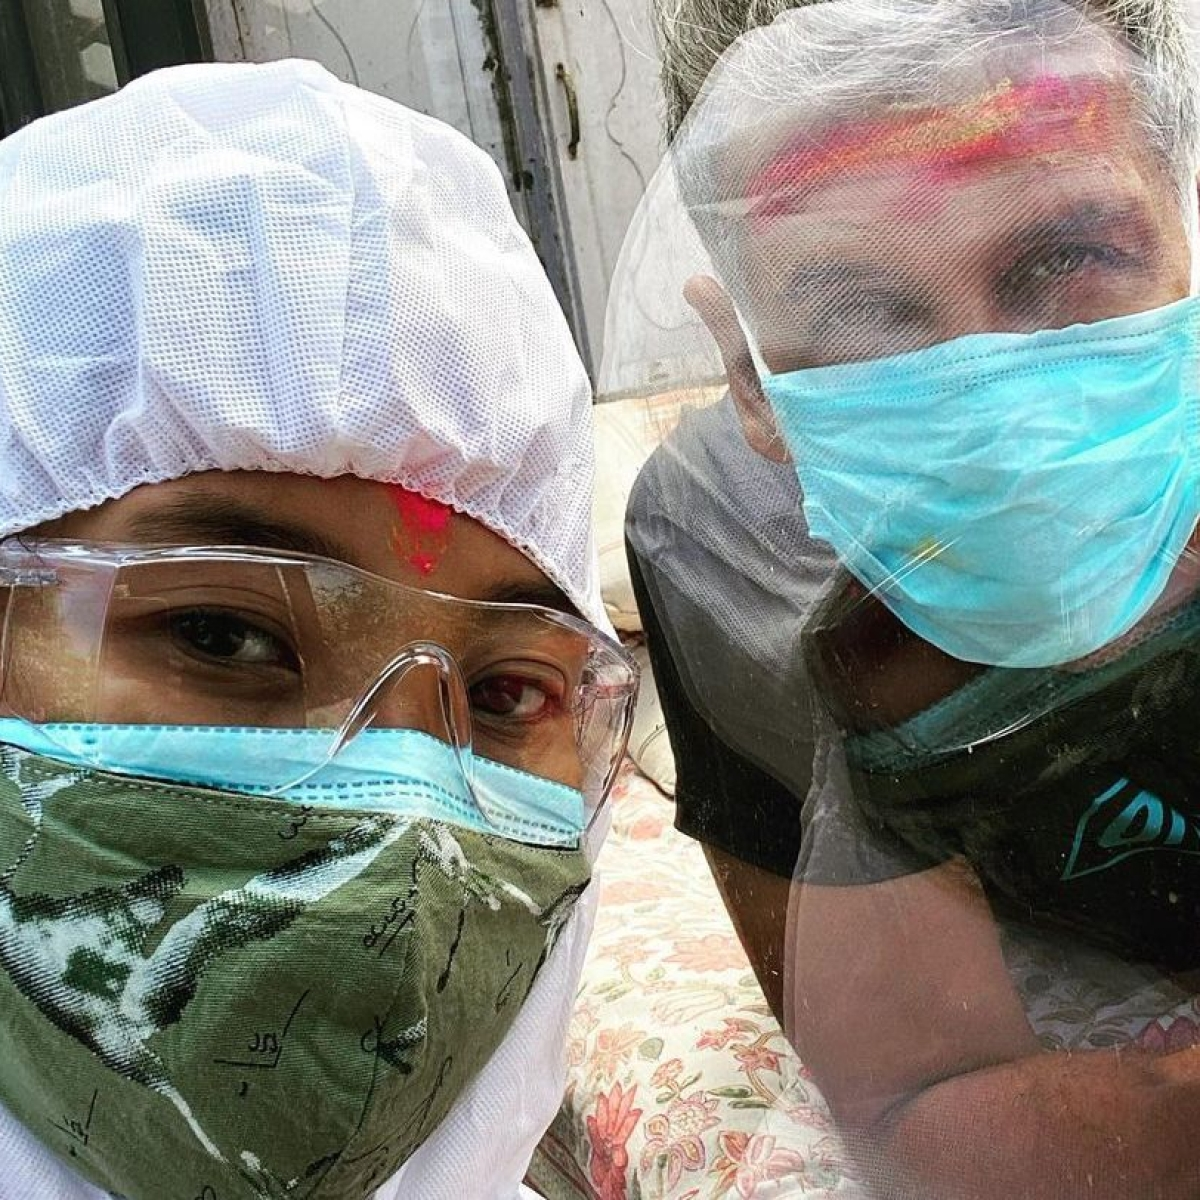 Ankita Konwar puts on a PPE suit to celebrate Holi with Covid-19 positive Milind Soman